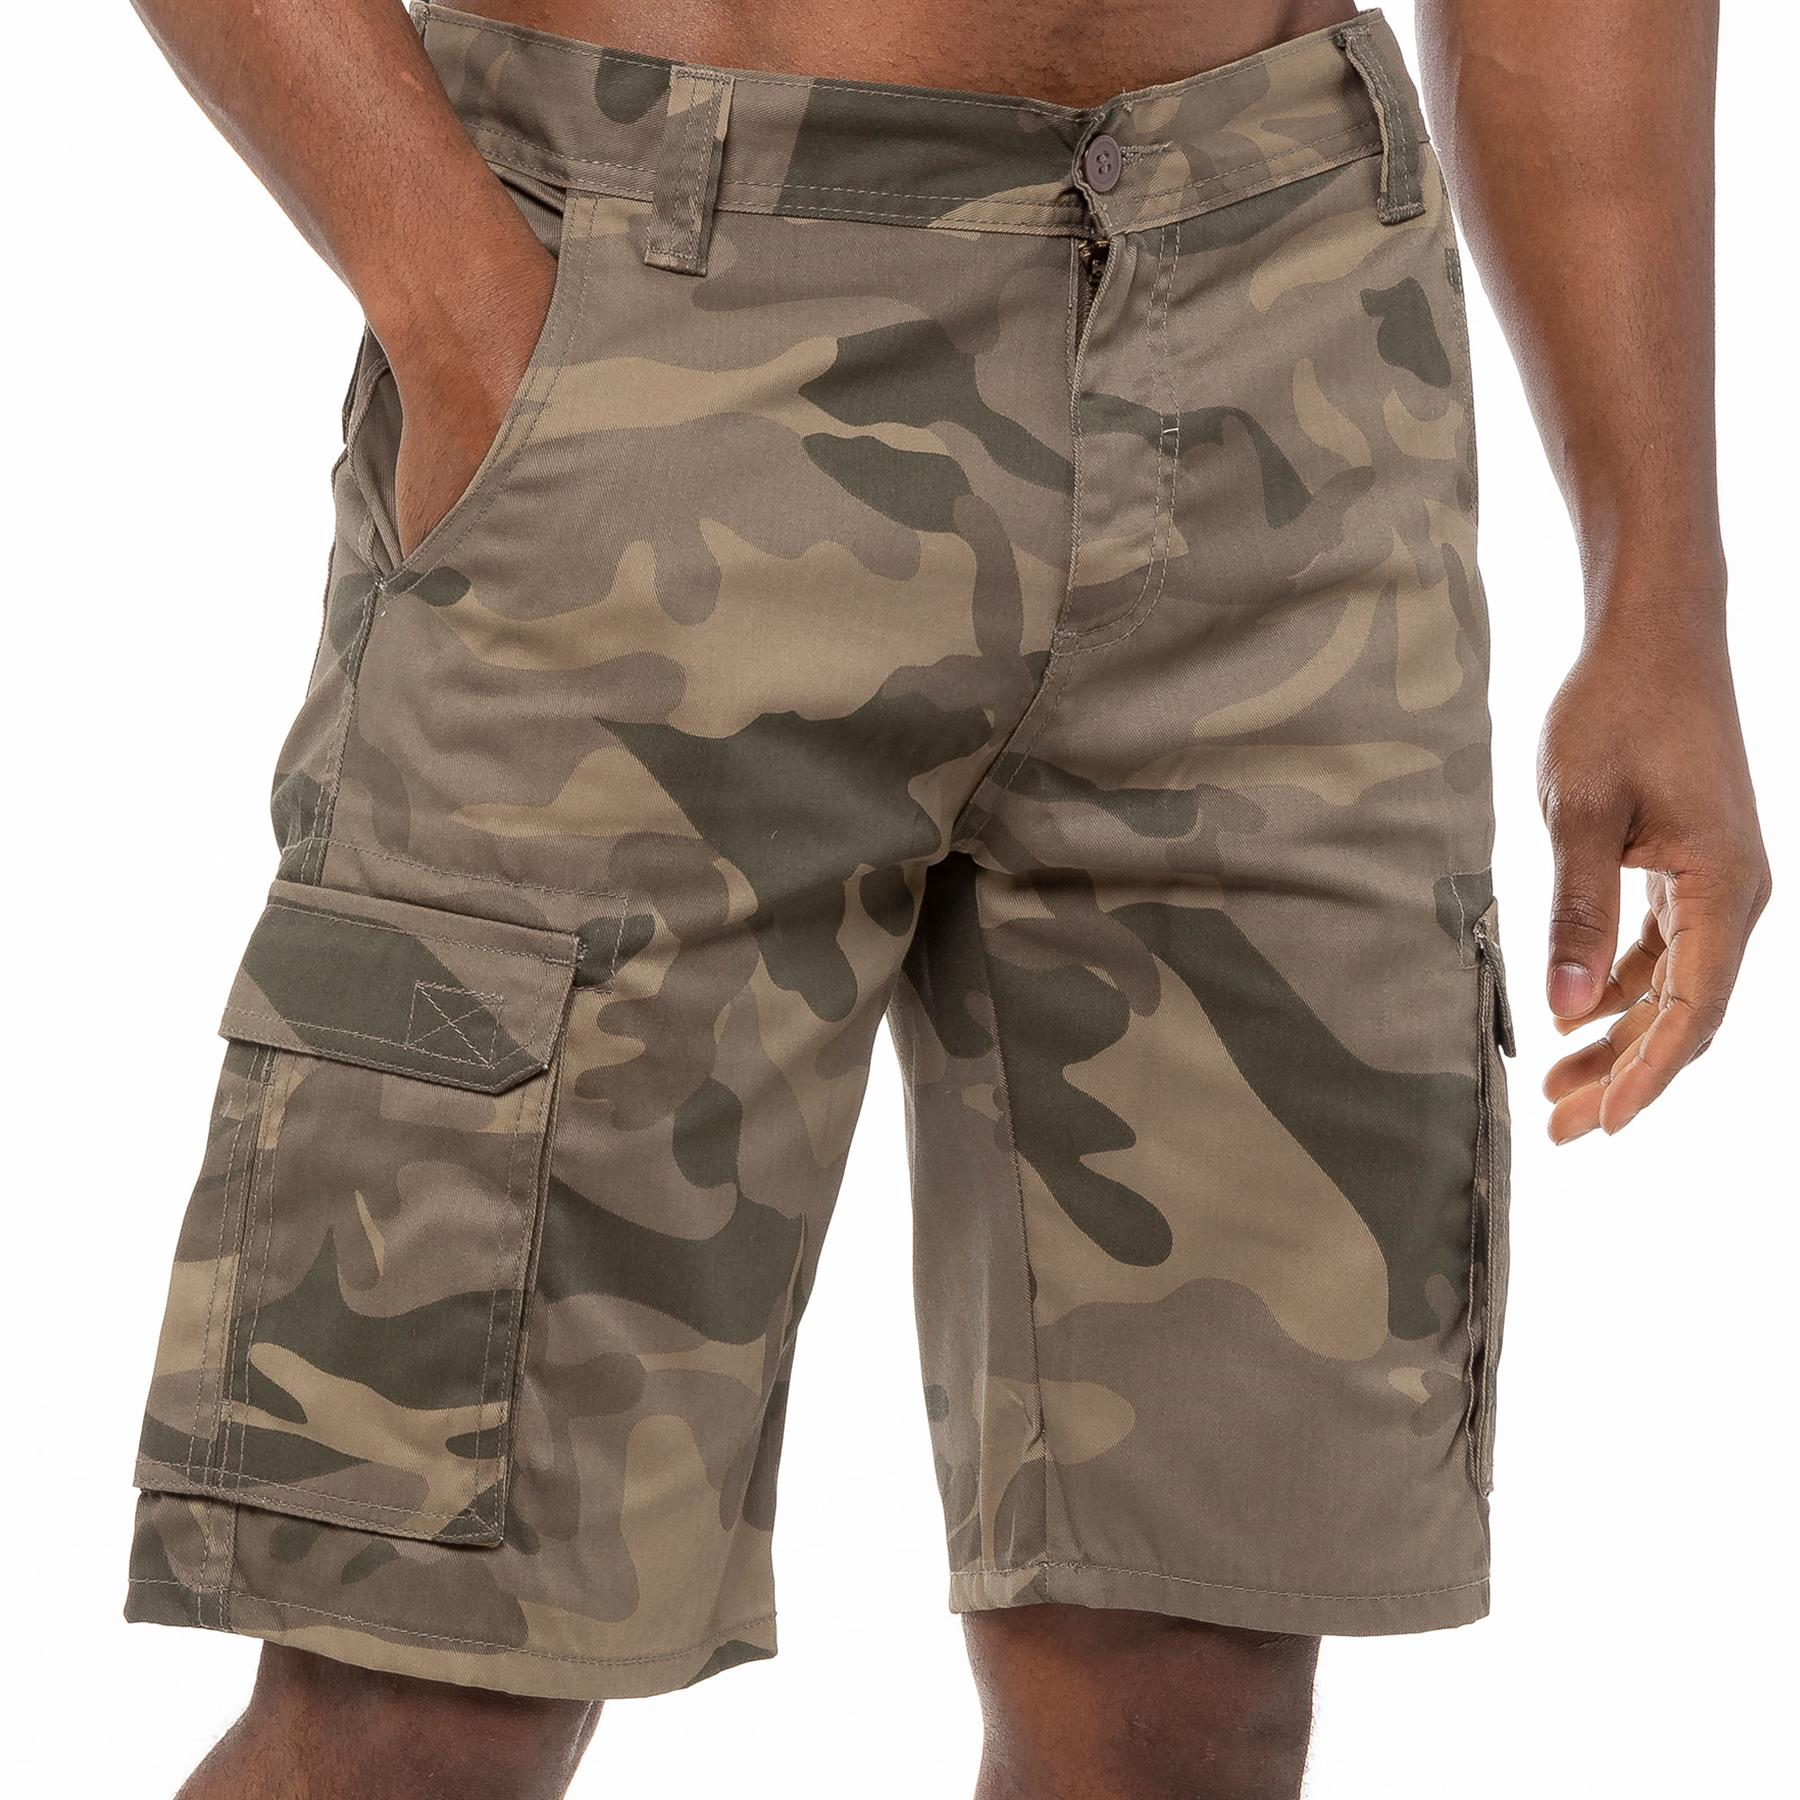 thumbnail 25 - Kruze Jeans Mens Army Combat Shorts Camouflage Cargo Casual Camo Work Half Pants